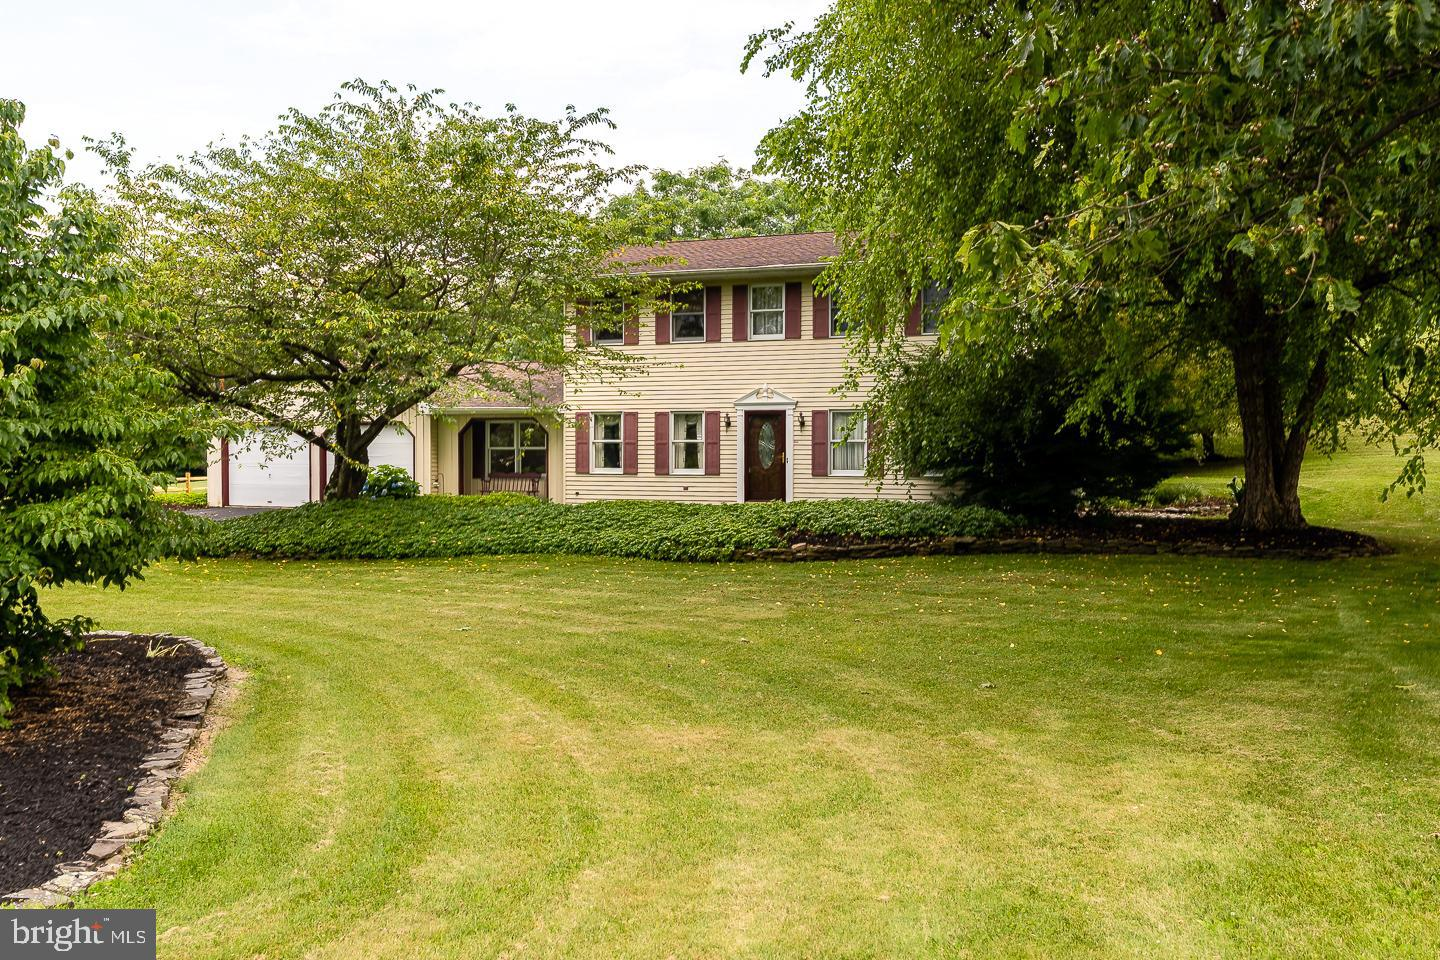 7230 WHISPERING LANE, SLATINGTON, PA 18080